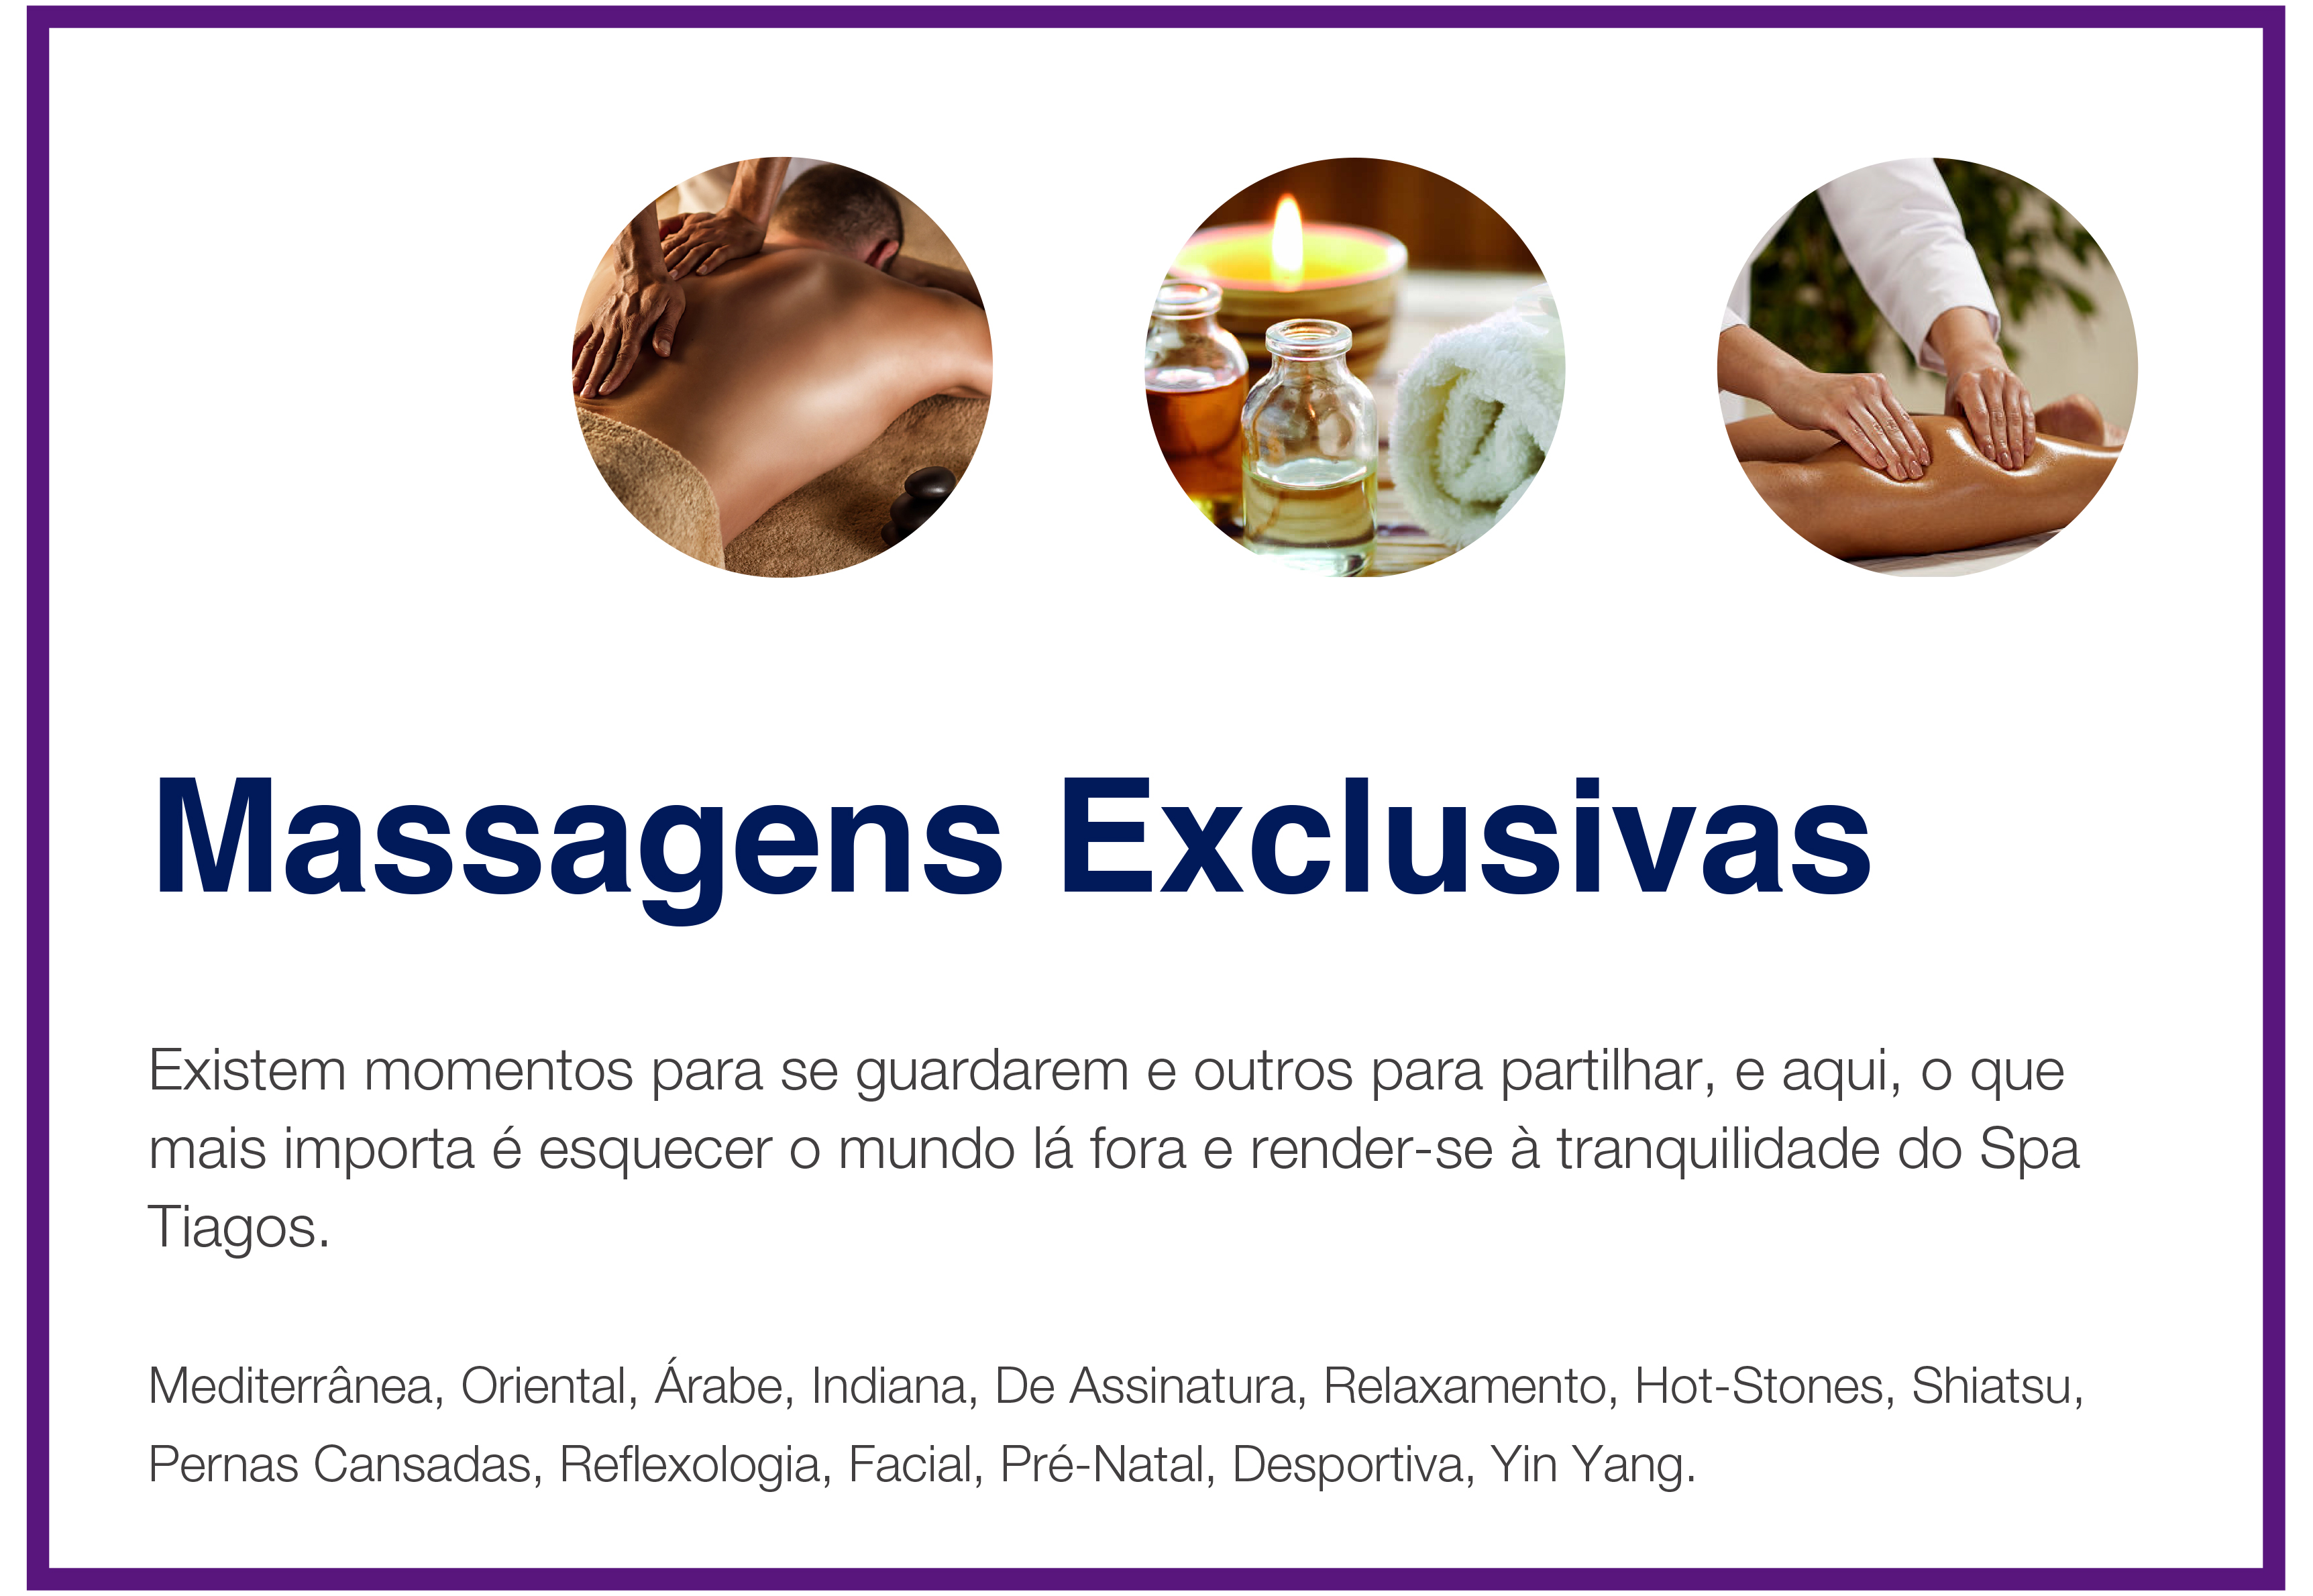 massagens exclusivas